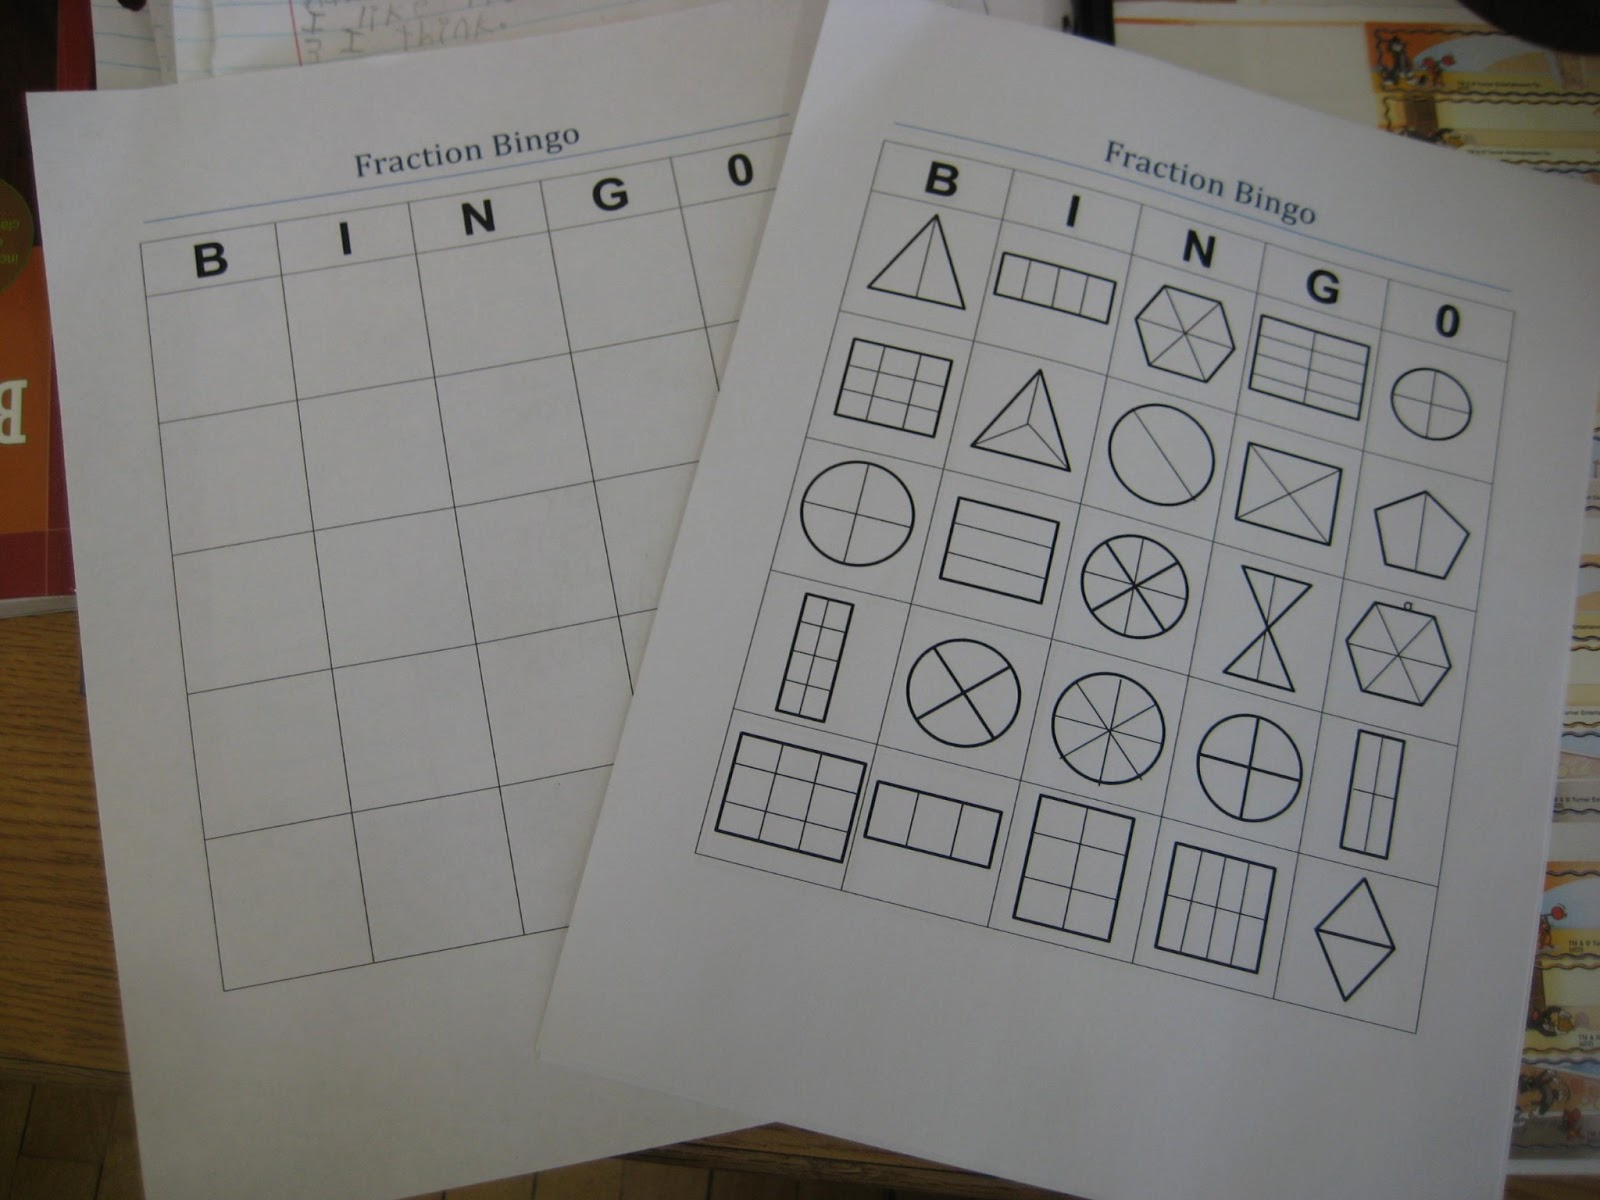 Day's Class Notes: Fraction Bingo